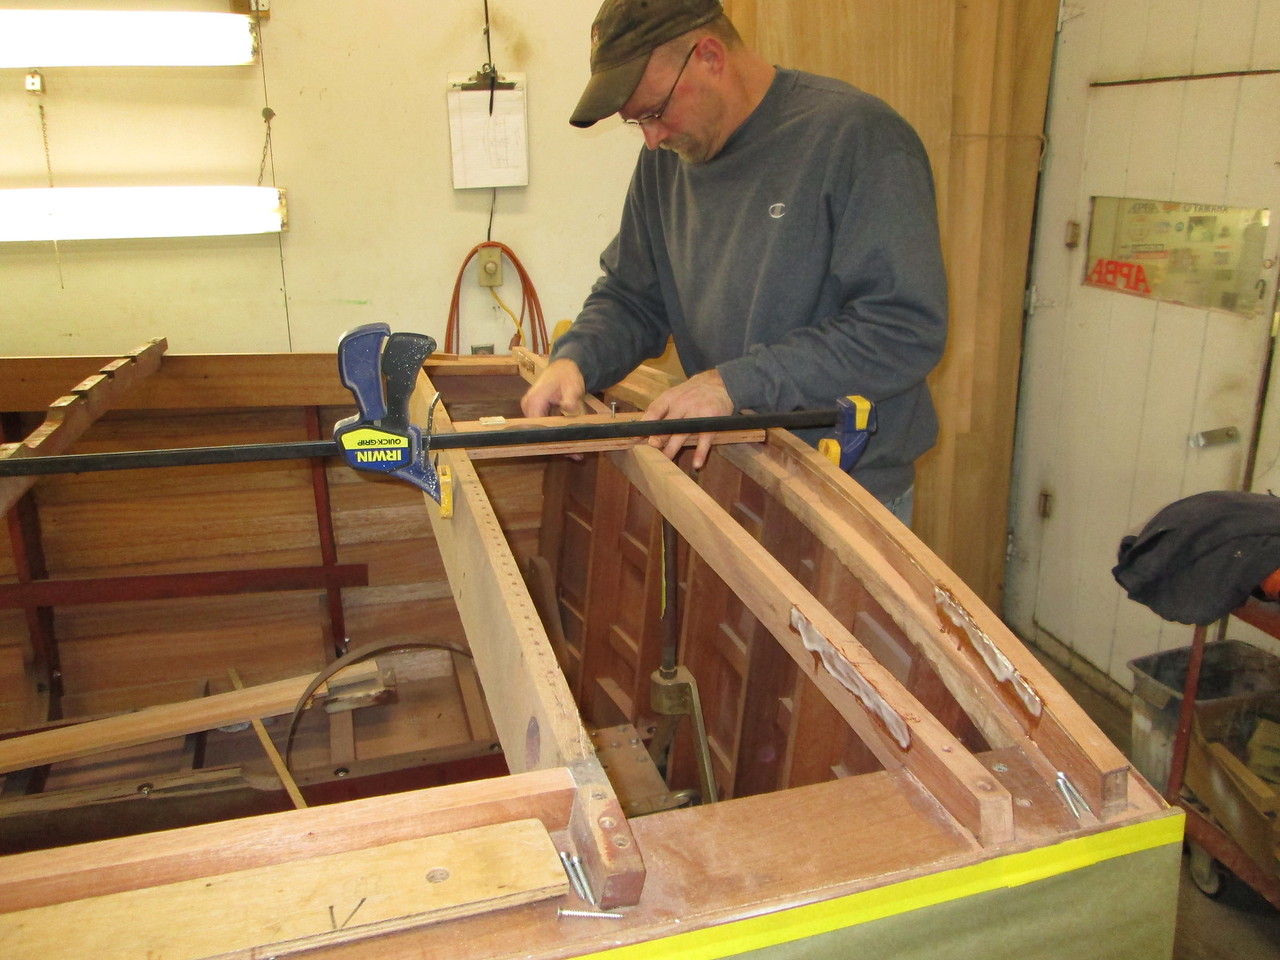 New  rear king plank fit and now being installed.